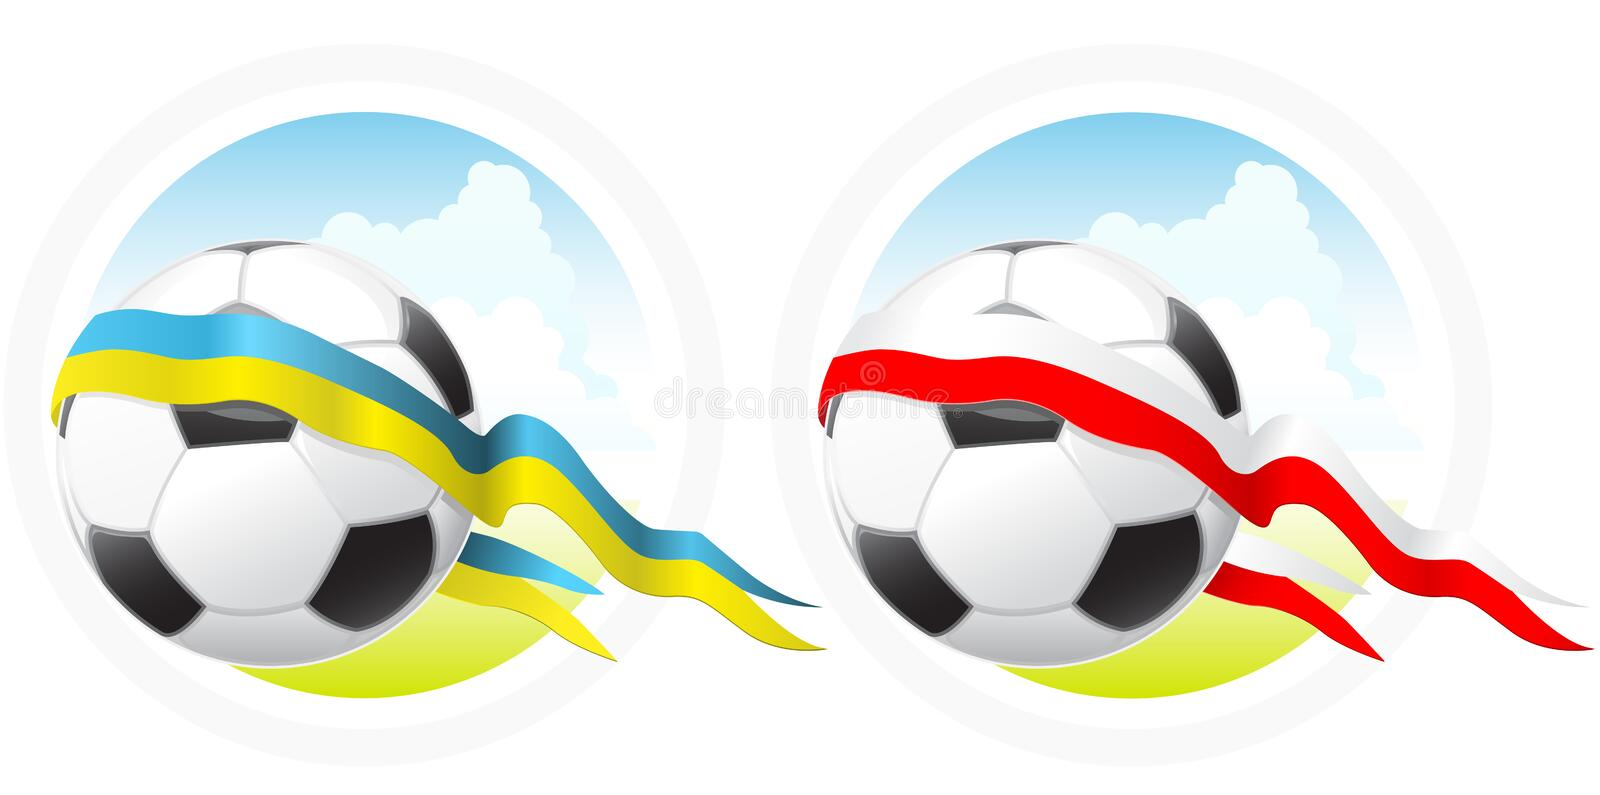 Euro Soccer Emblem Royalty Free Stock Photography